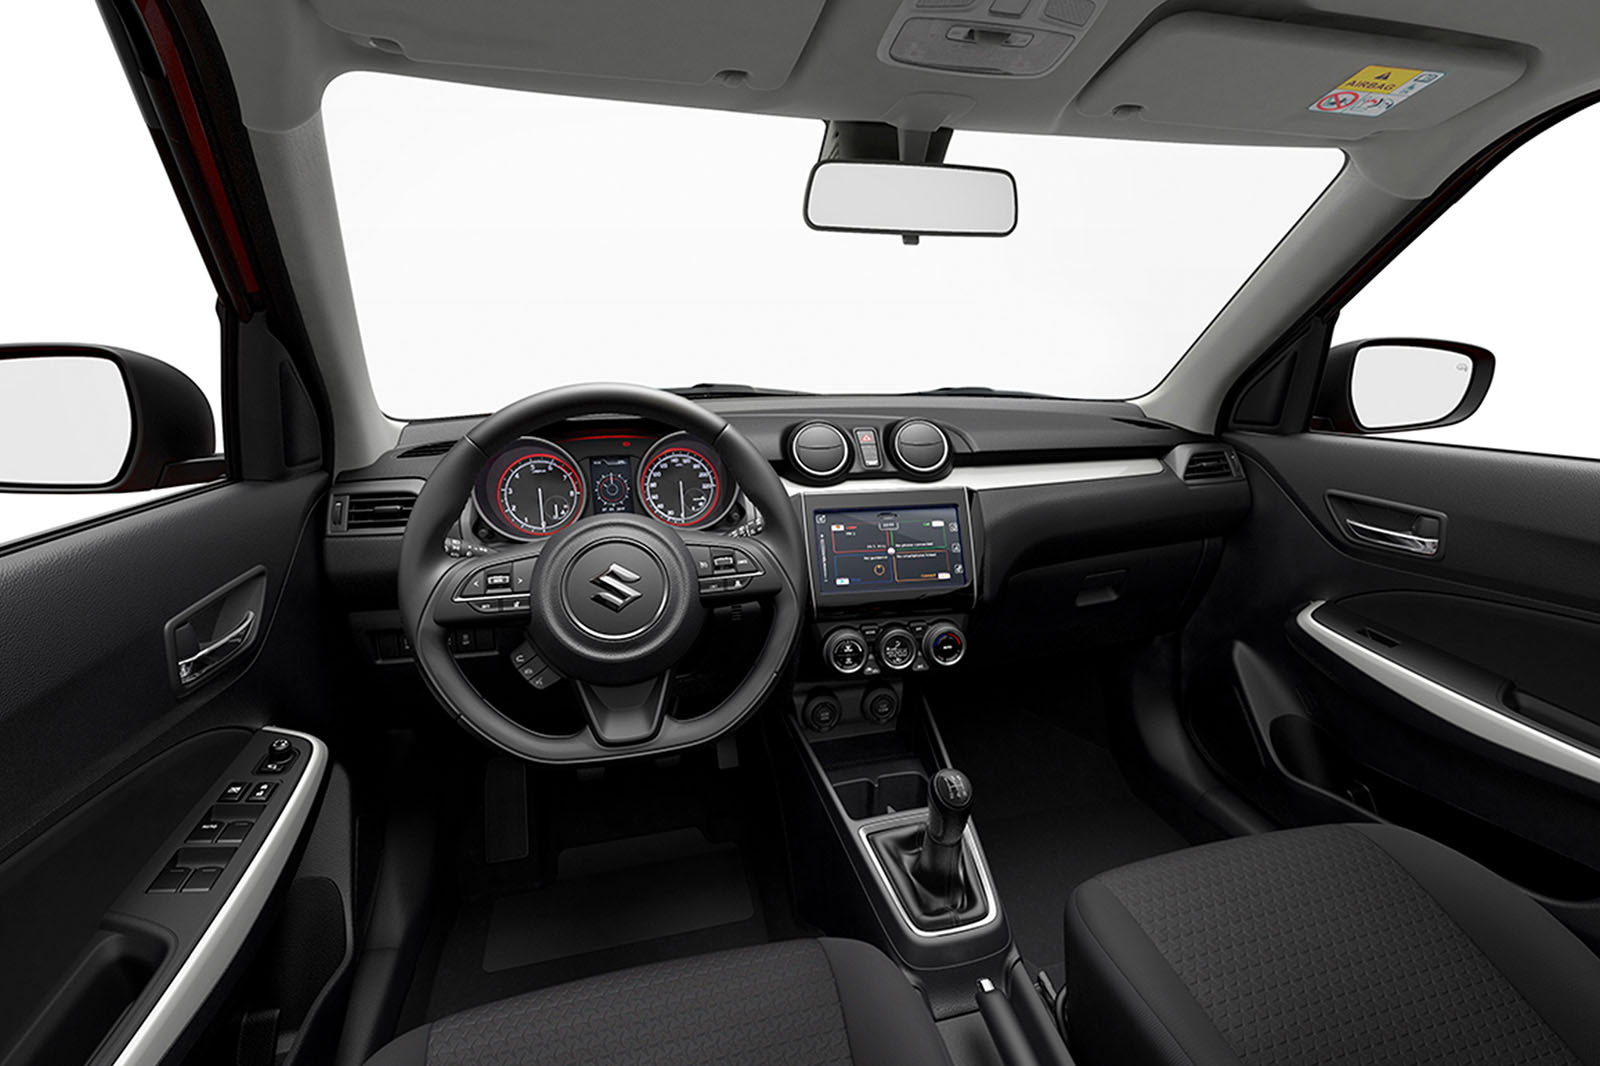 2017 Suzuki Swift On Sale In June Priced From 10999 Autocar 2000 Transmission Sd Sensor The Sz5 Also Gets A 42in Lcd Display Place Of Instrument Dials It Comes With New Driver Assist Technology Including Forward Detection System